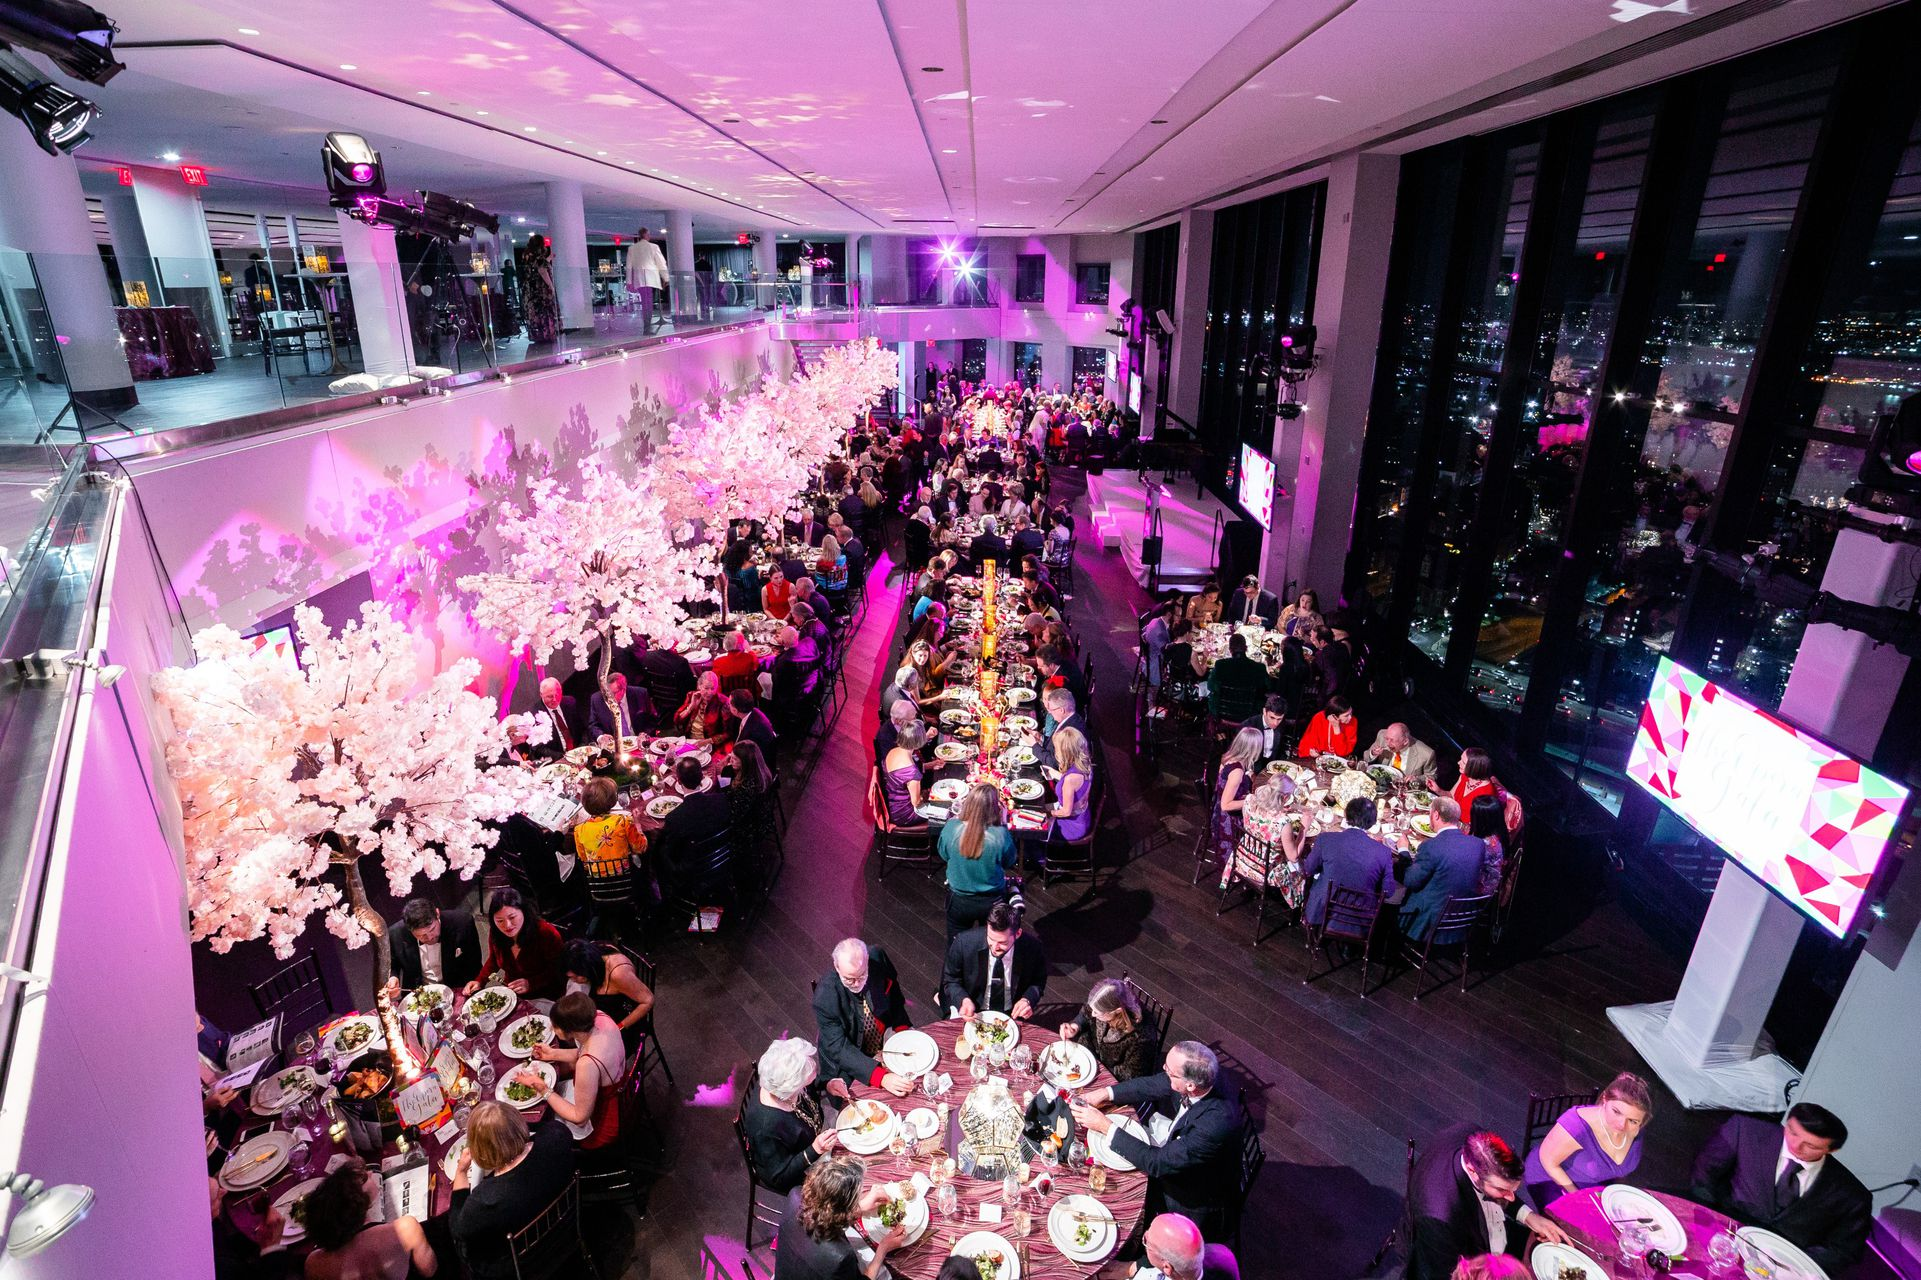 An aerial view of a large gala event